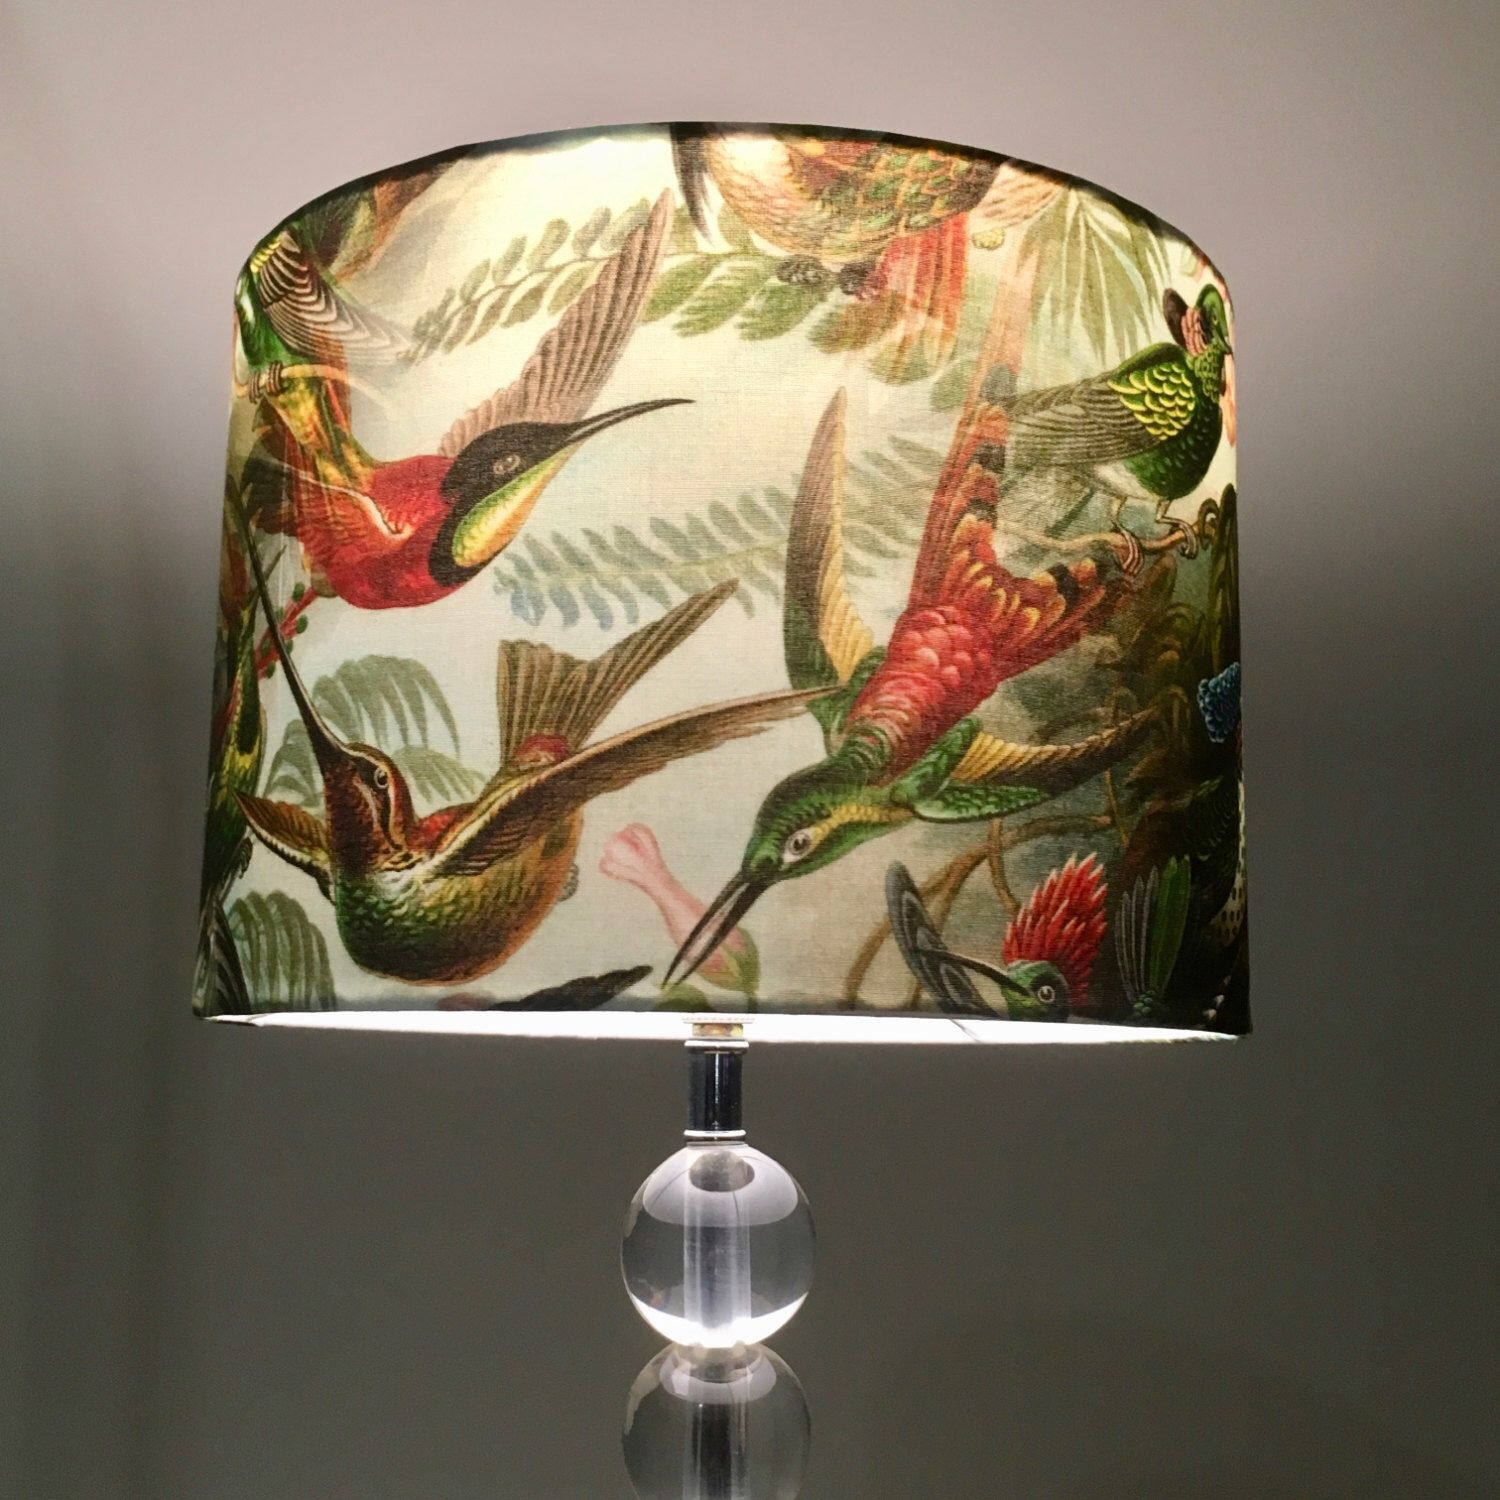 Hummingbird lamp shade bird lamp shade ernst haeckel hummingbirds hummingbird lamp shade bird lamp shade ernst haeckel hummingbirds lamp shade by rooelliestudio on aloadofball Images